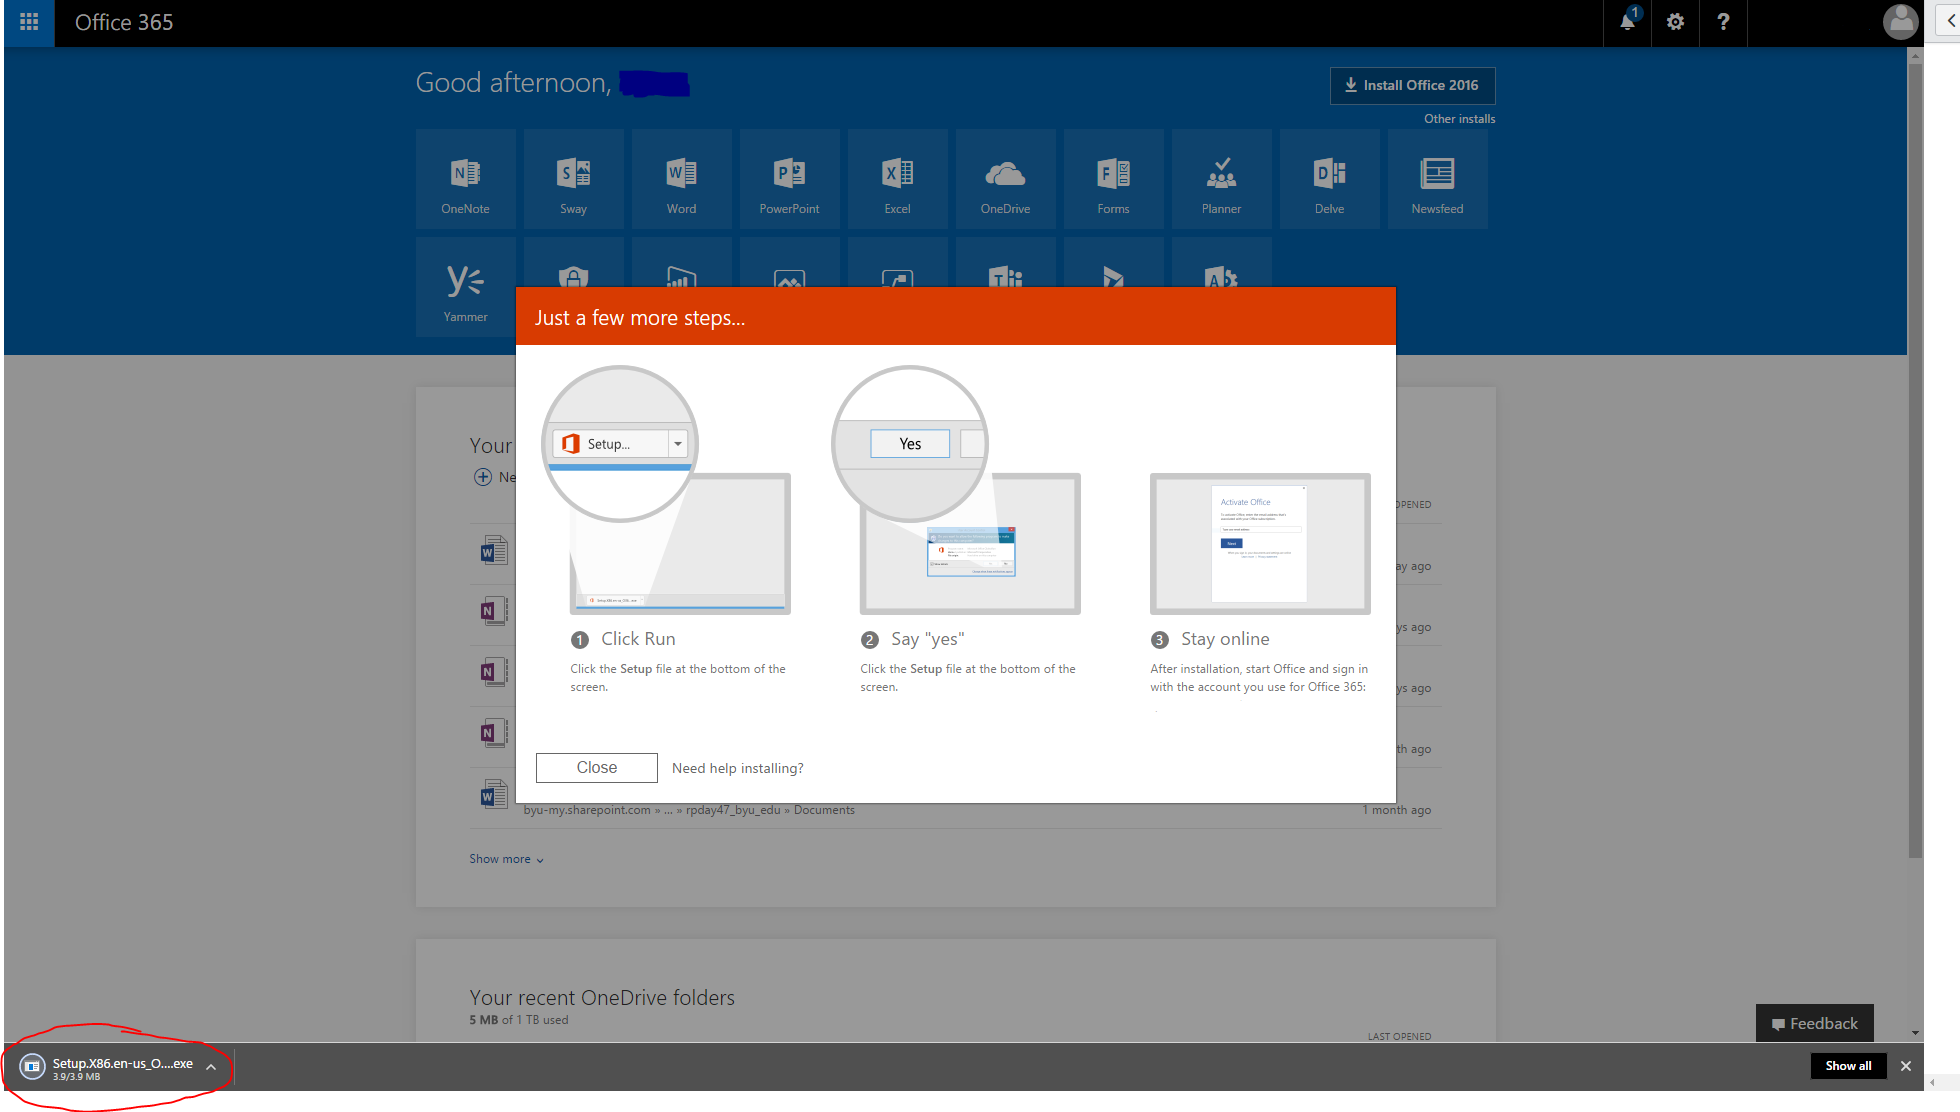 Knowledge - Install Office 365